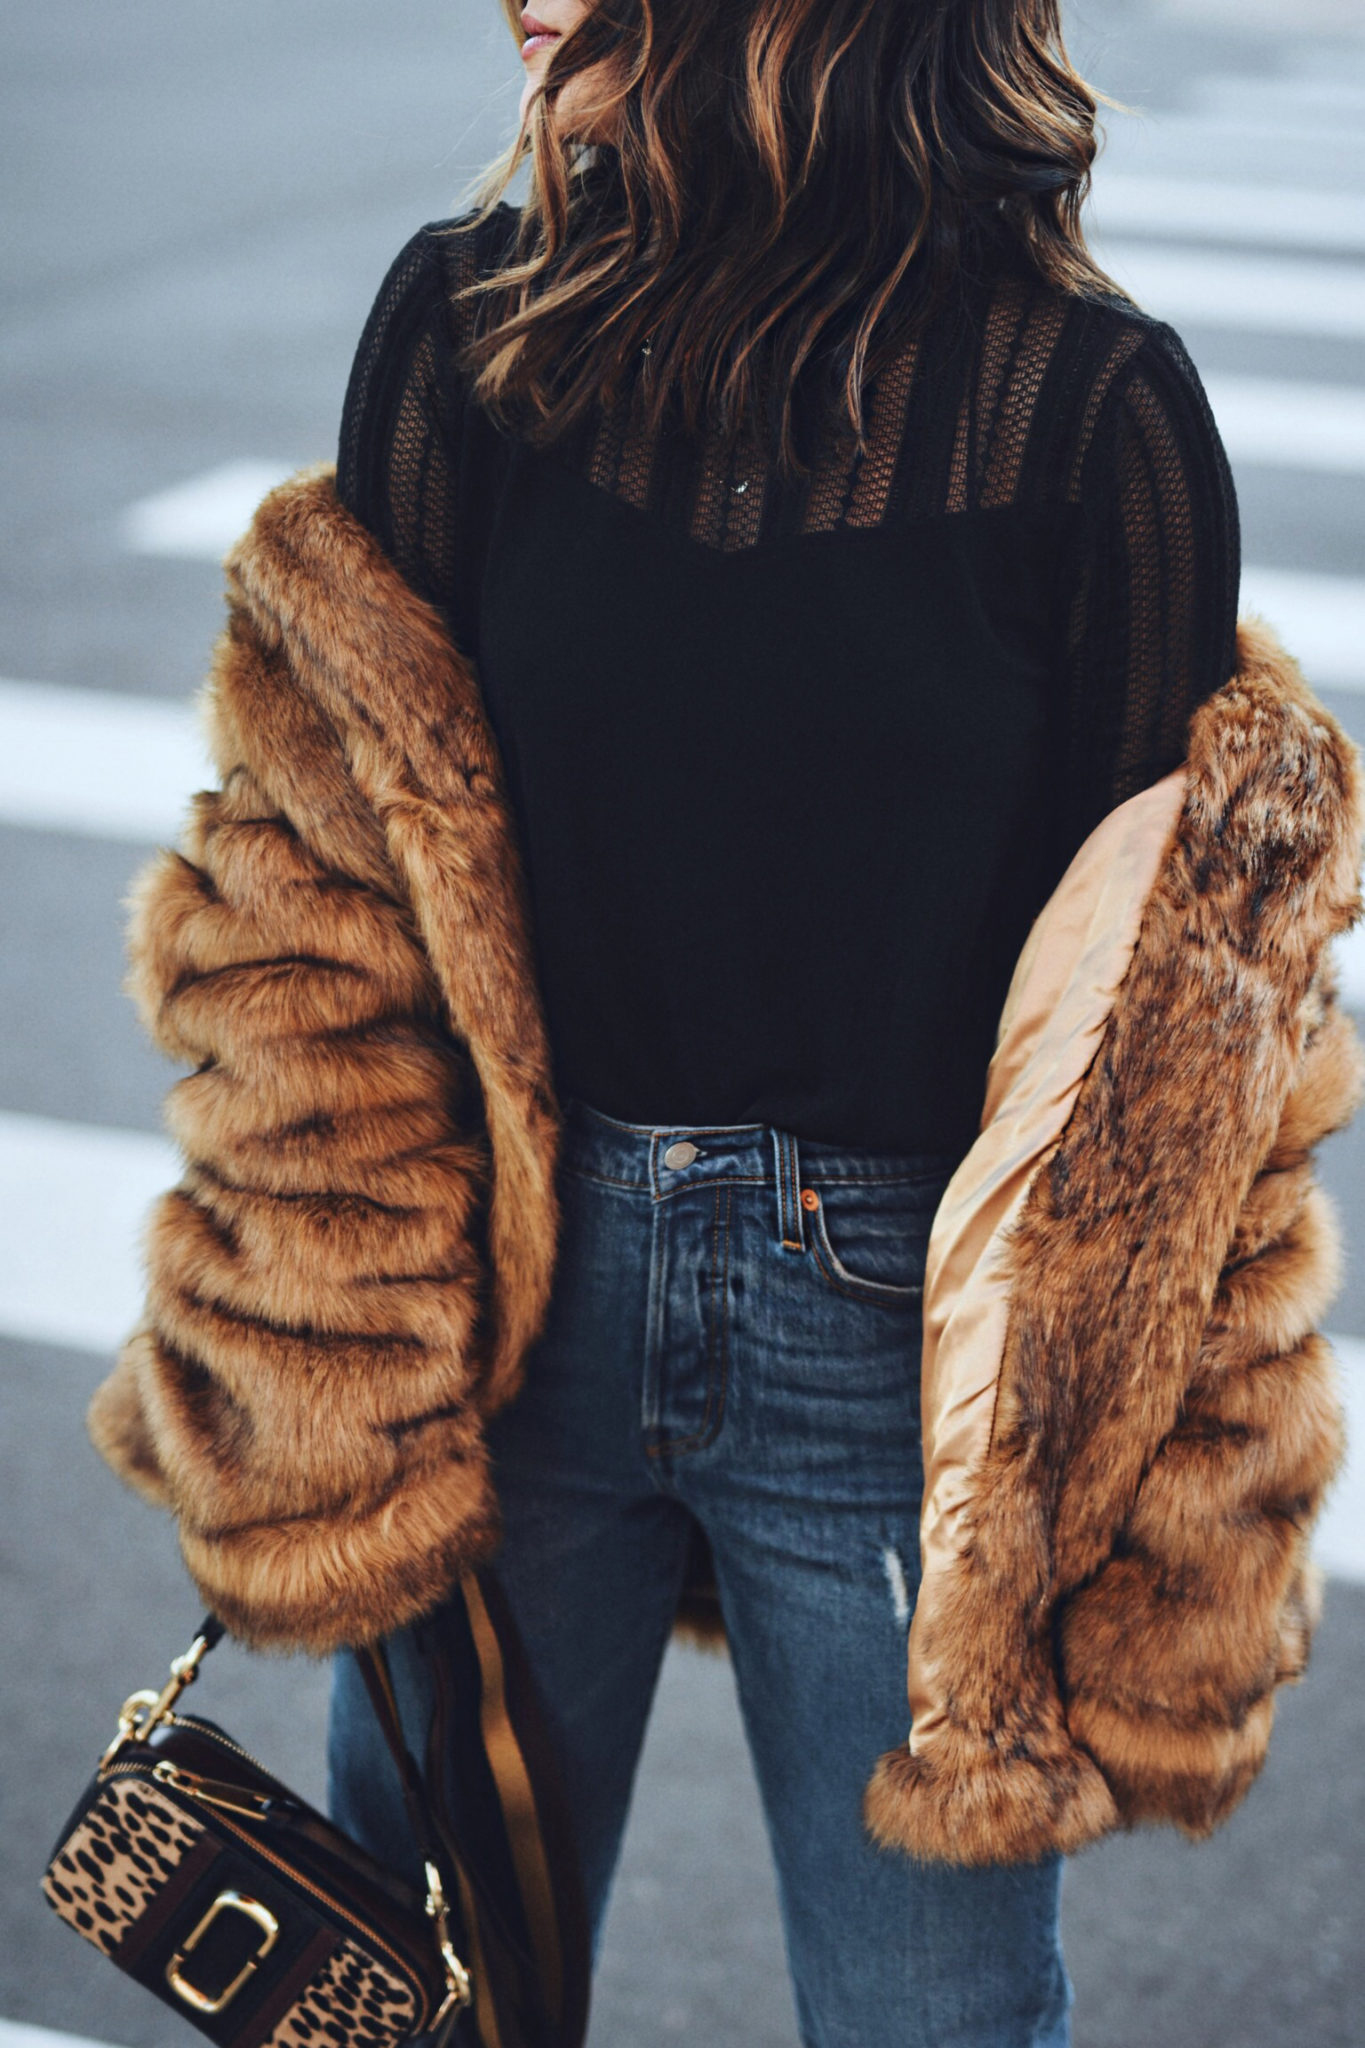 Carolina Hellal of Chic Talk wearing a faux fur coat via ASOS, Levi's jeans, Marc Jacobs crossbody bag and Nine West high heels.